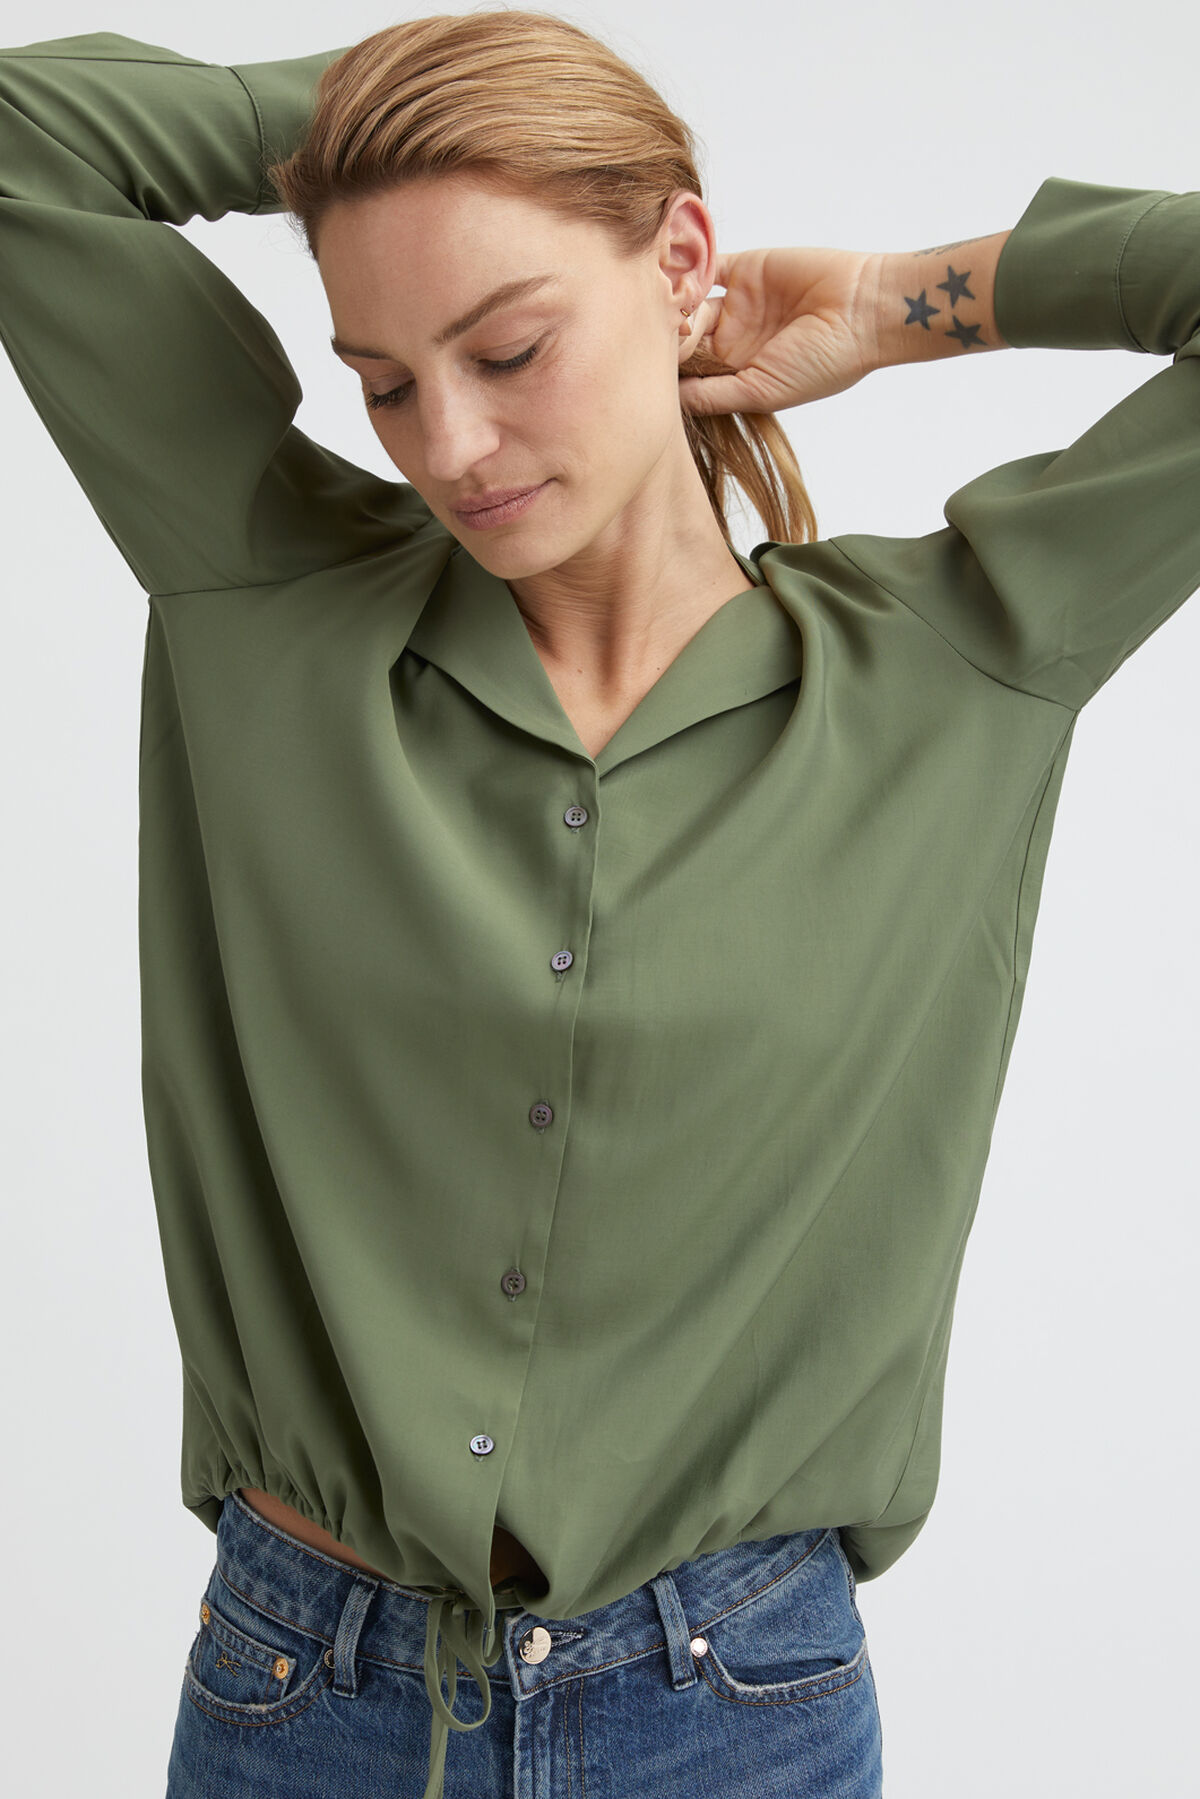 HENTY SHIRT Structured Viscose - Relaxed Fit